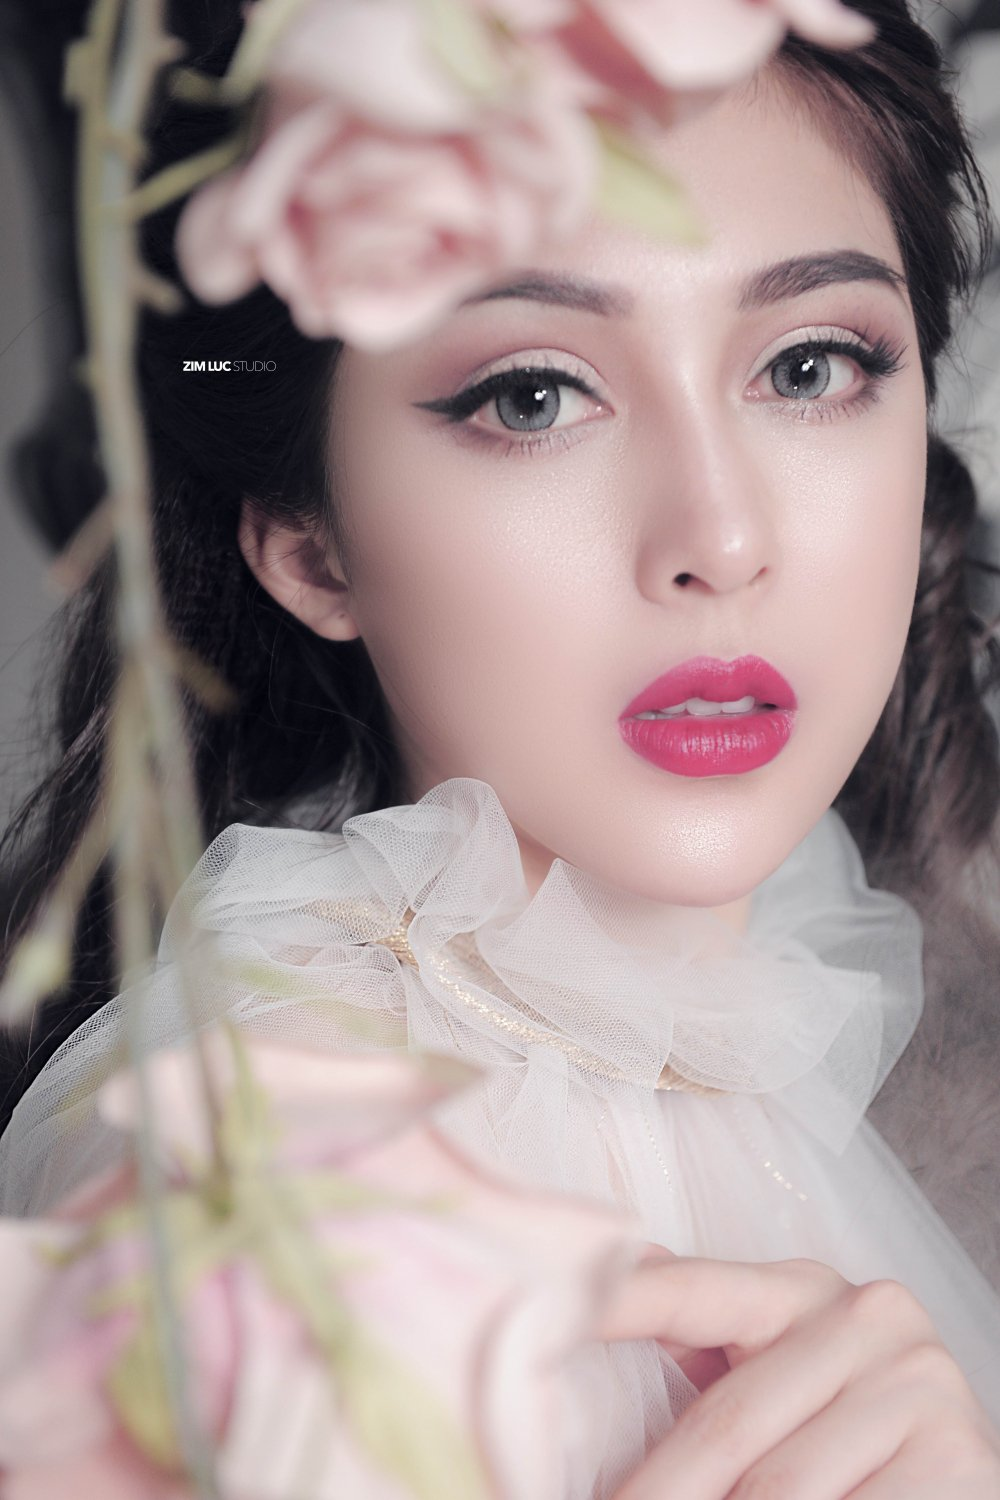 Vo Thanh Hien goi cam me dam long nguoi hinh anh 3